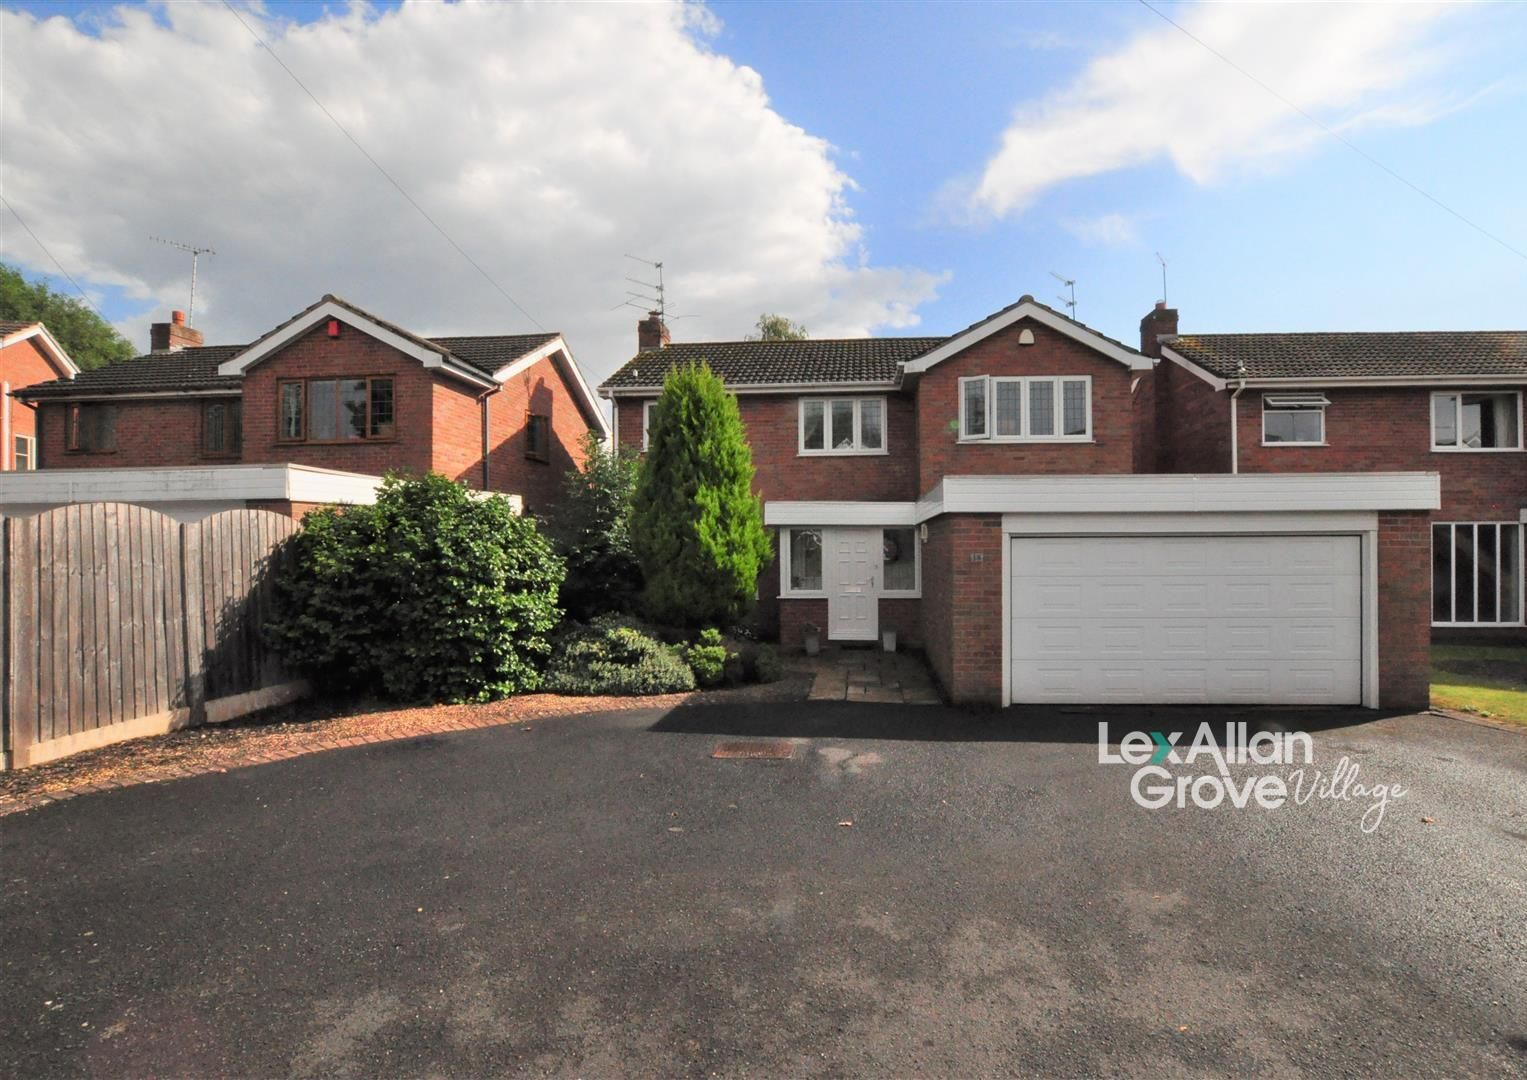 4 bed house for sale in Hagley  - Property Image 30